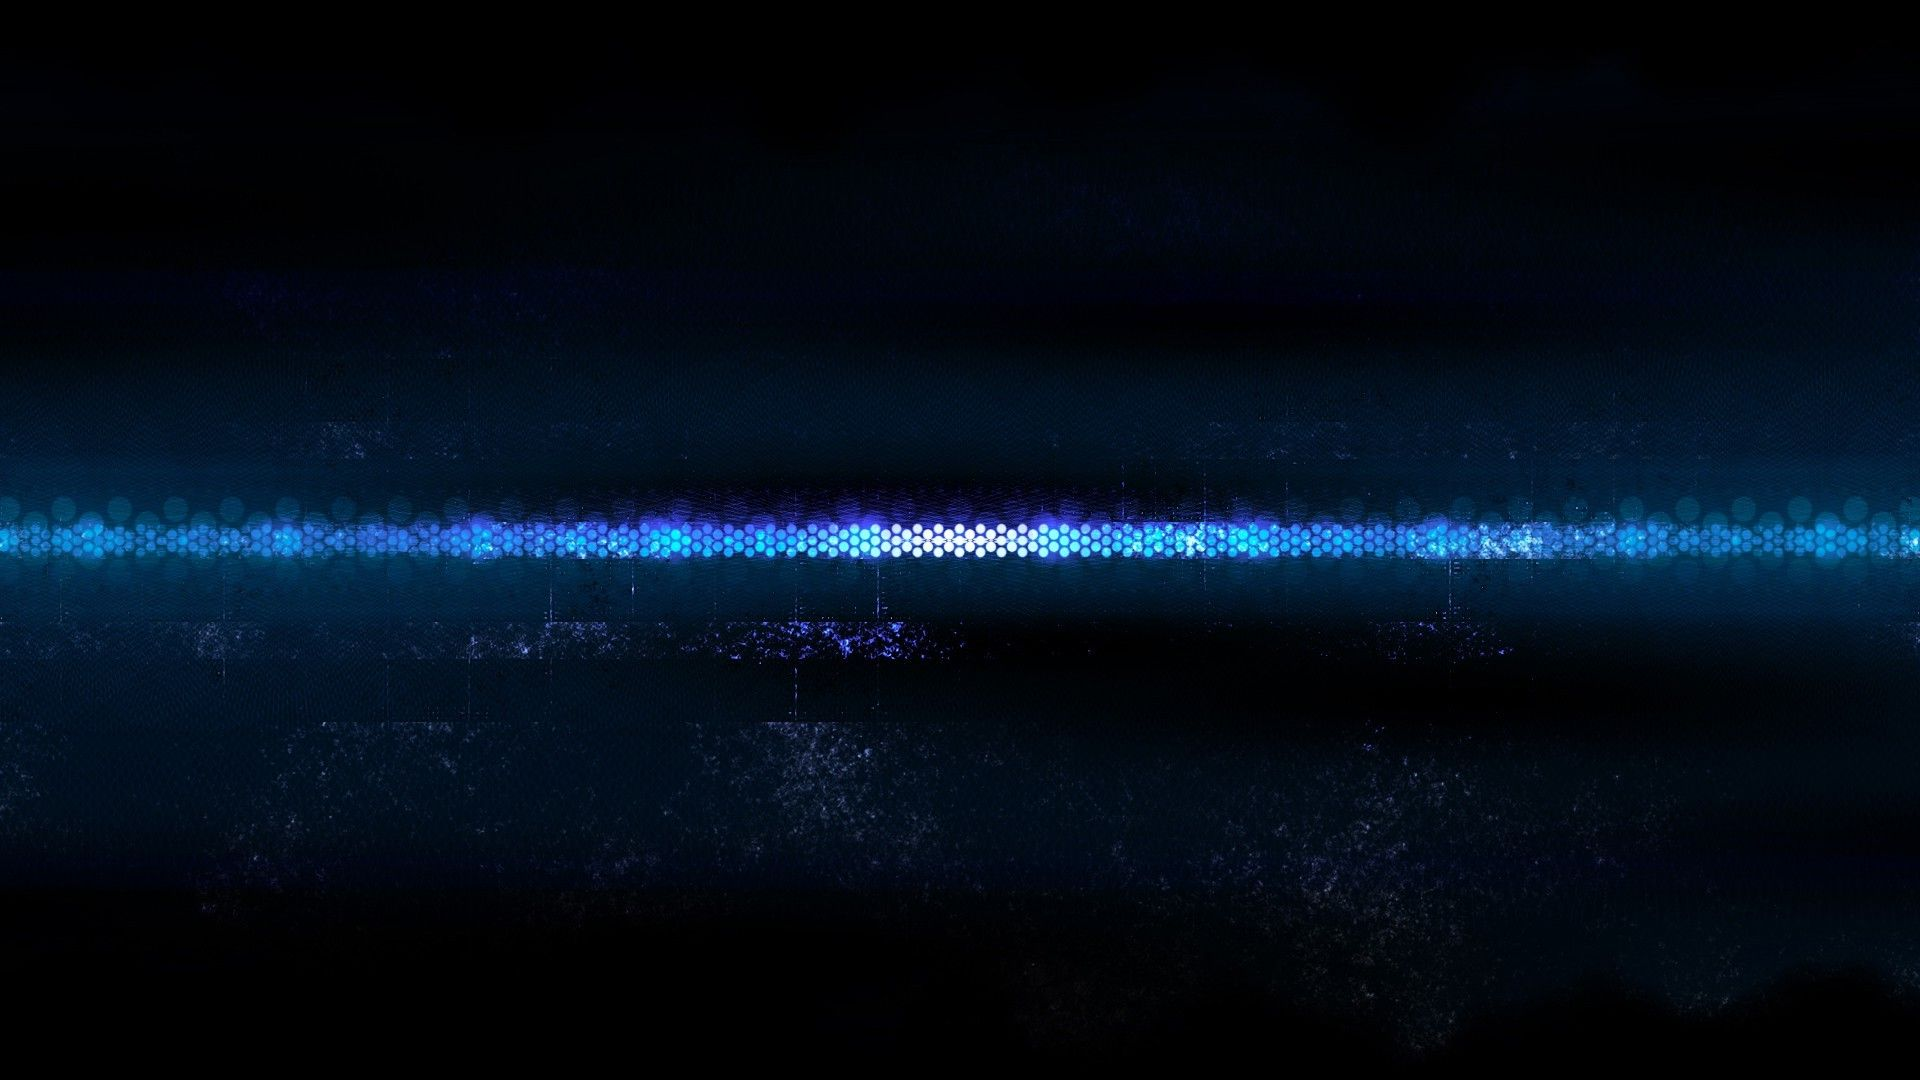 Blue Line free picture